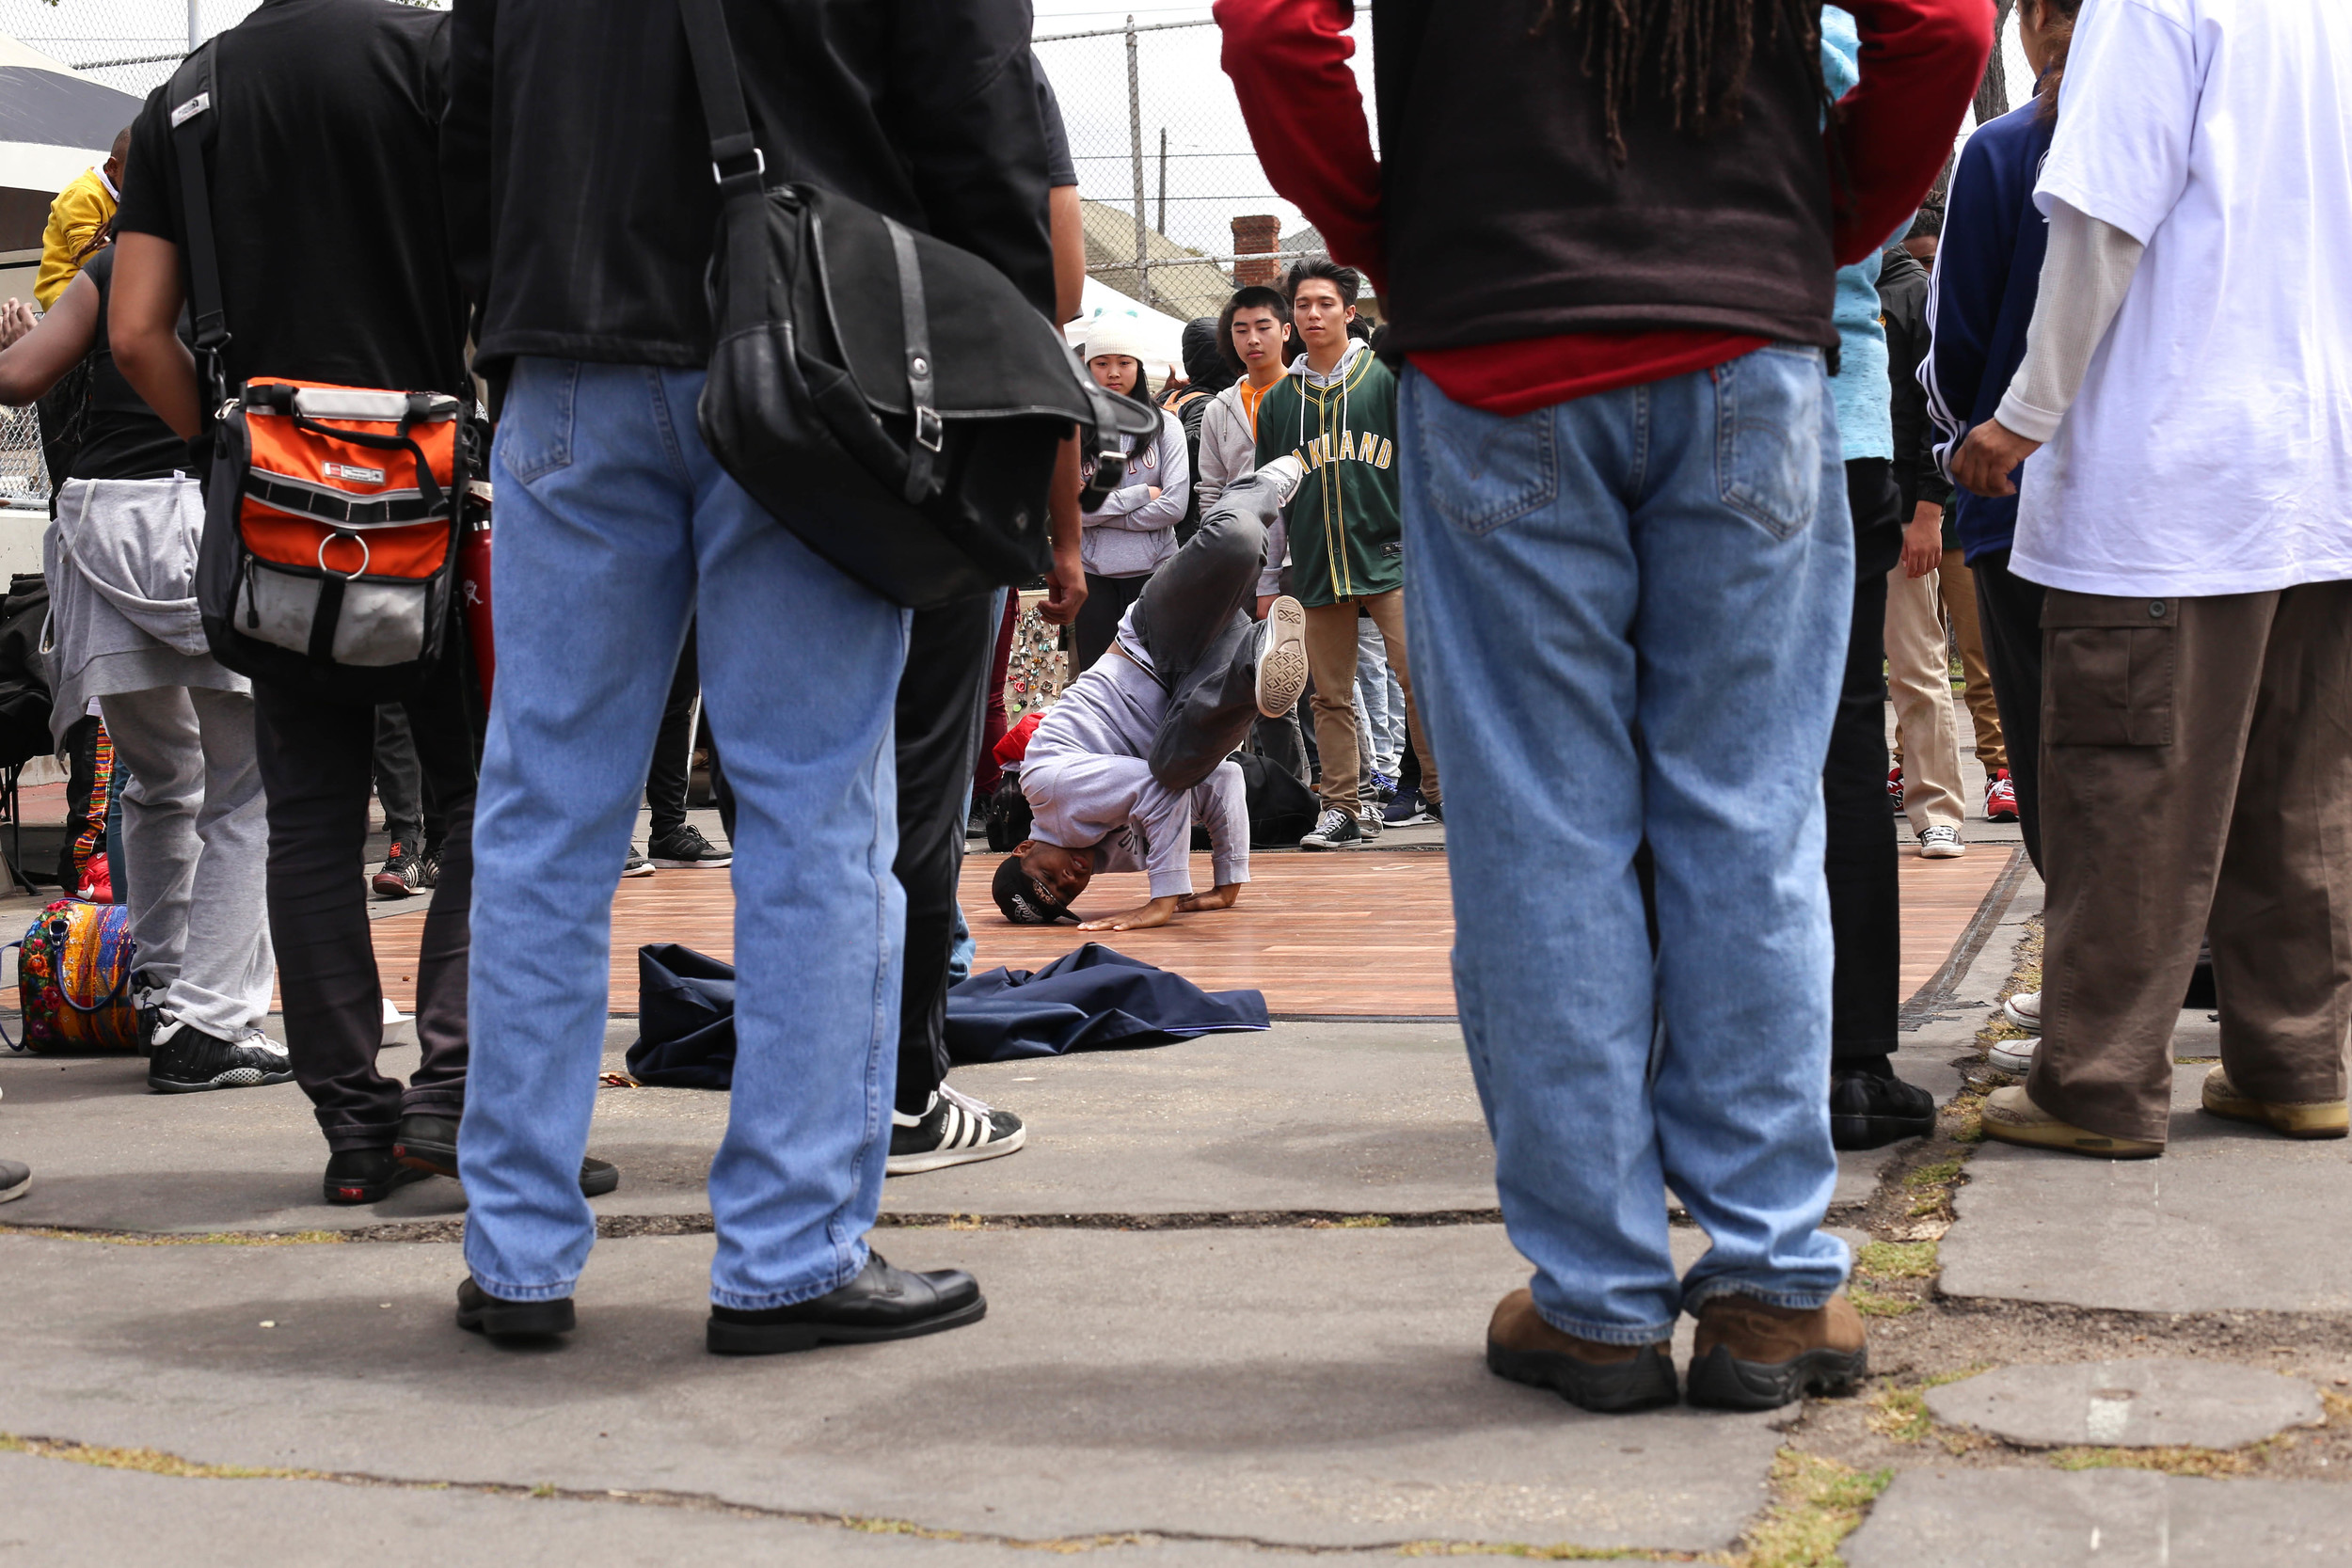 A crowd forms around a breakdancer.